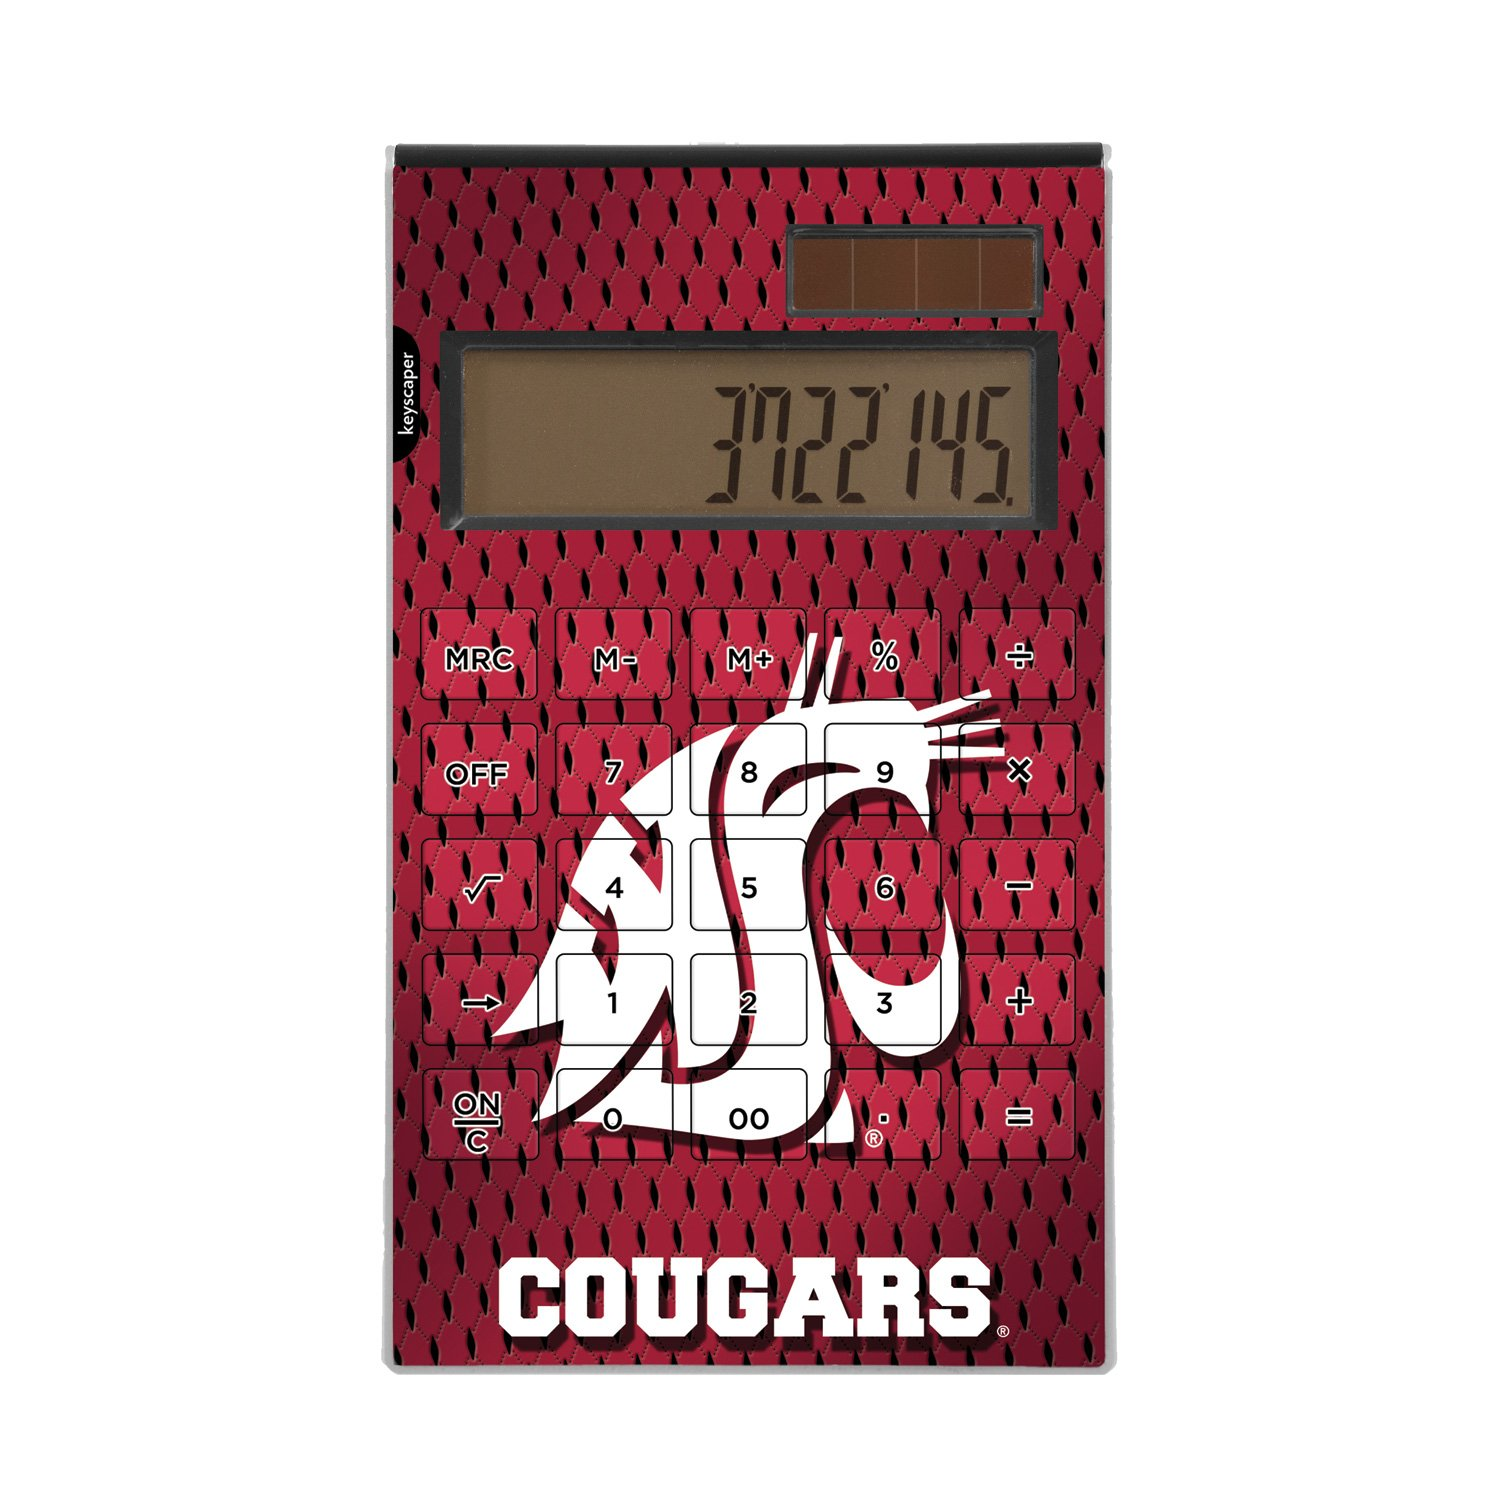 Washington State Cougars Desktop Calculator officially licensed by Washington State University Full Size Large Button Solar by keyscaper® by Keyscaper